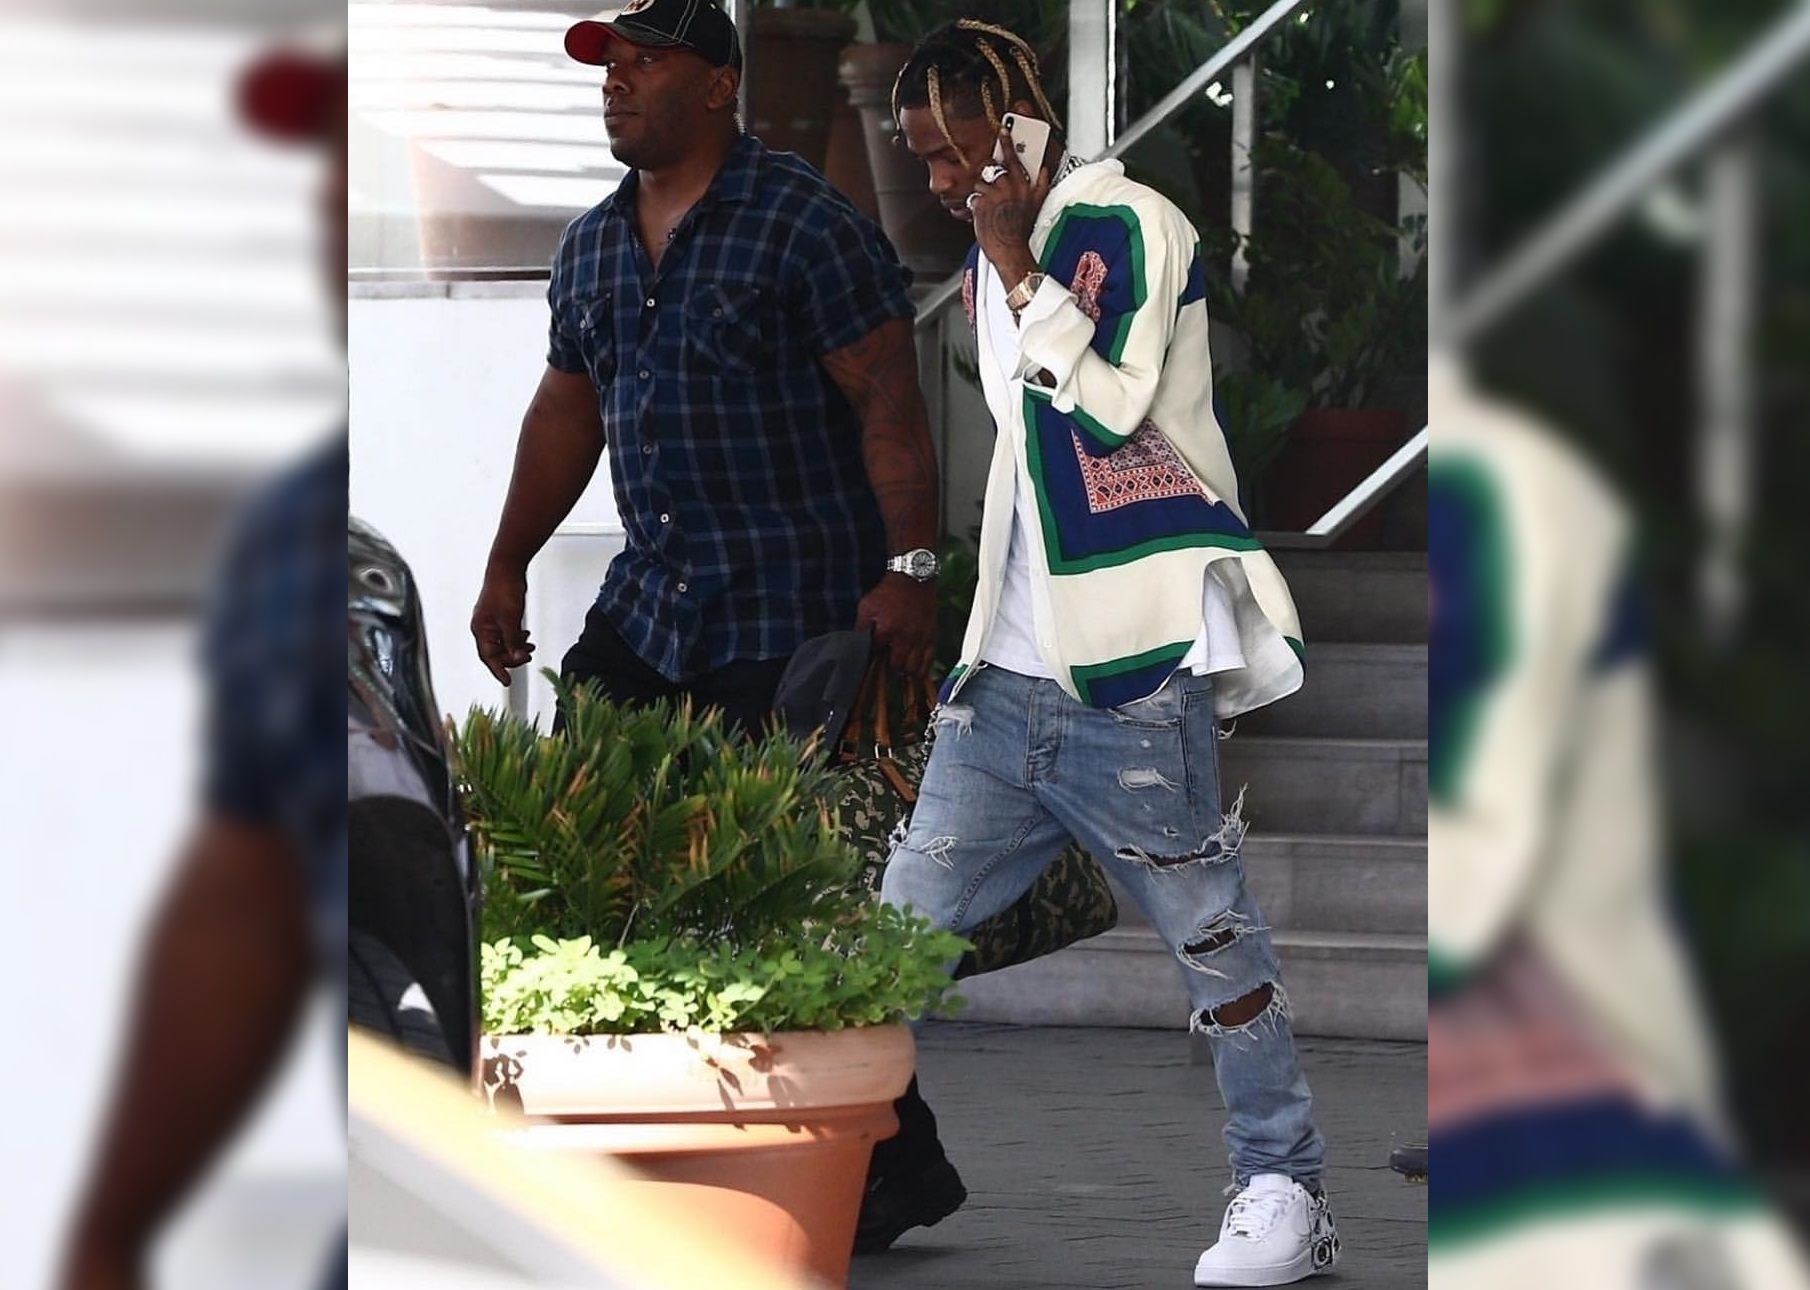 SPOTTED: Travis Scott Steps Out in CELINE and Supreme x COMME des Garcons x Nike